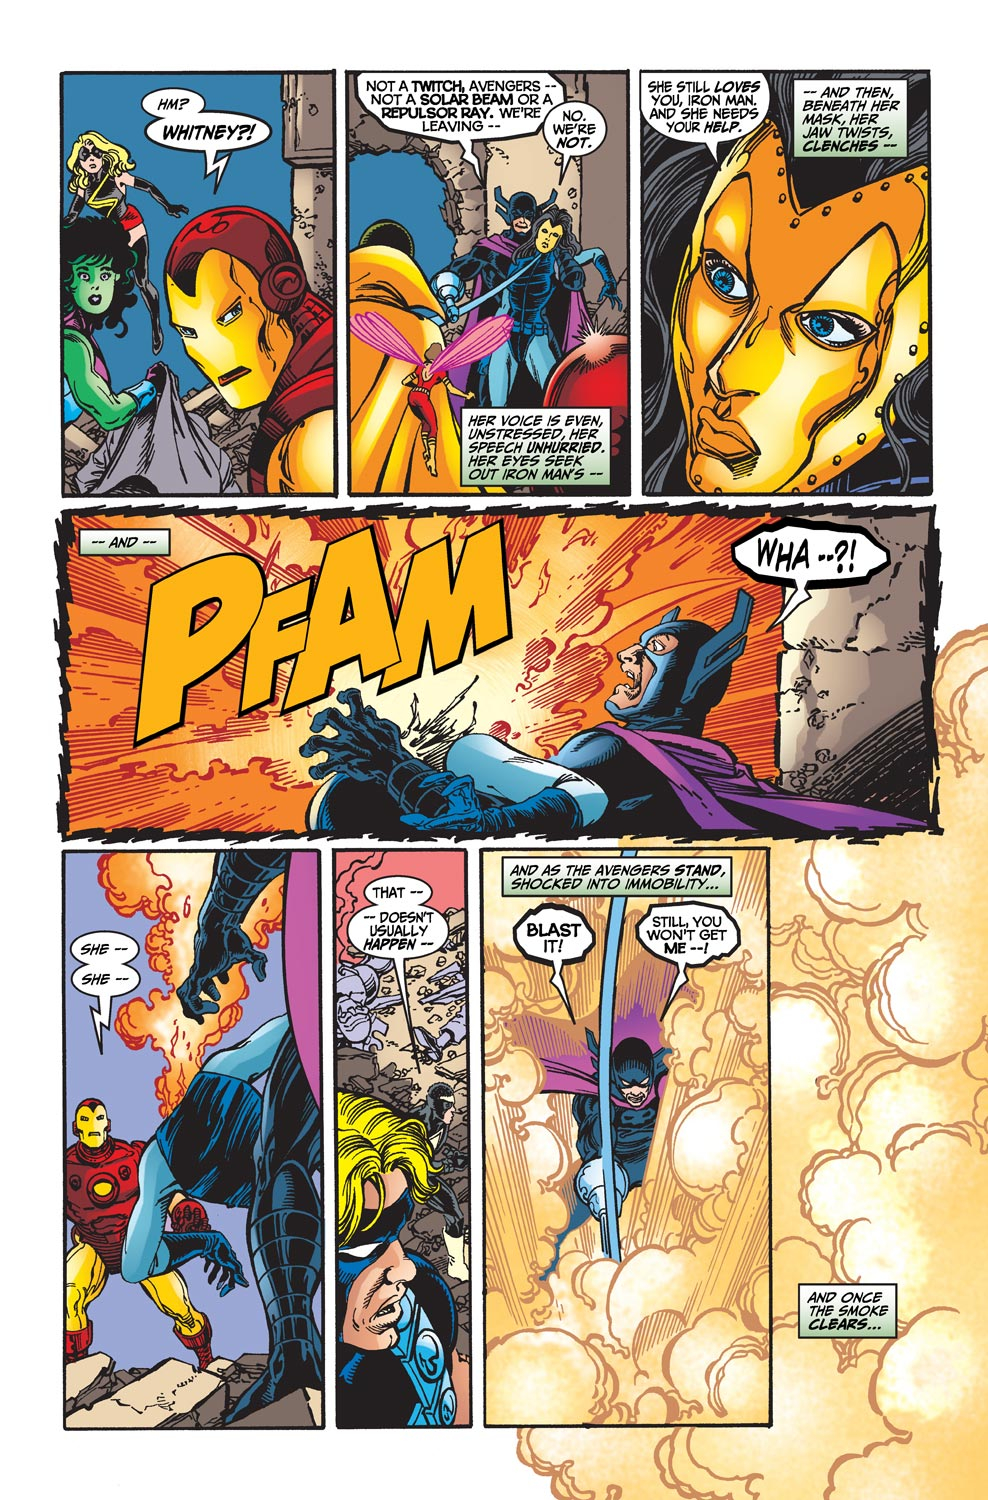 Avengers (1998) 31 Page 21